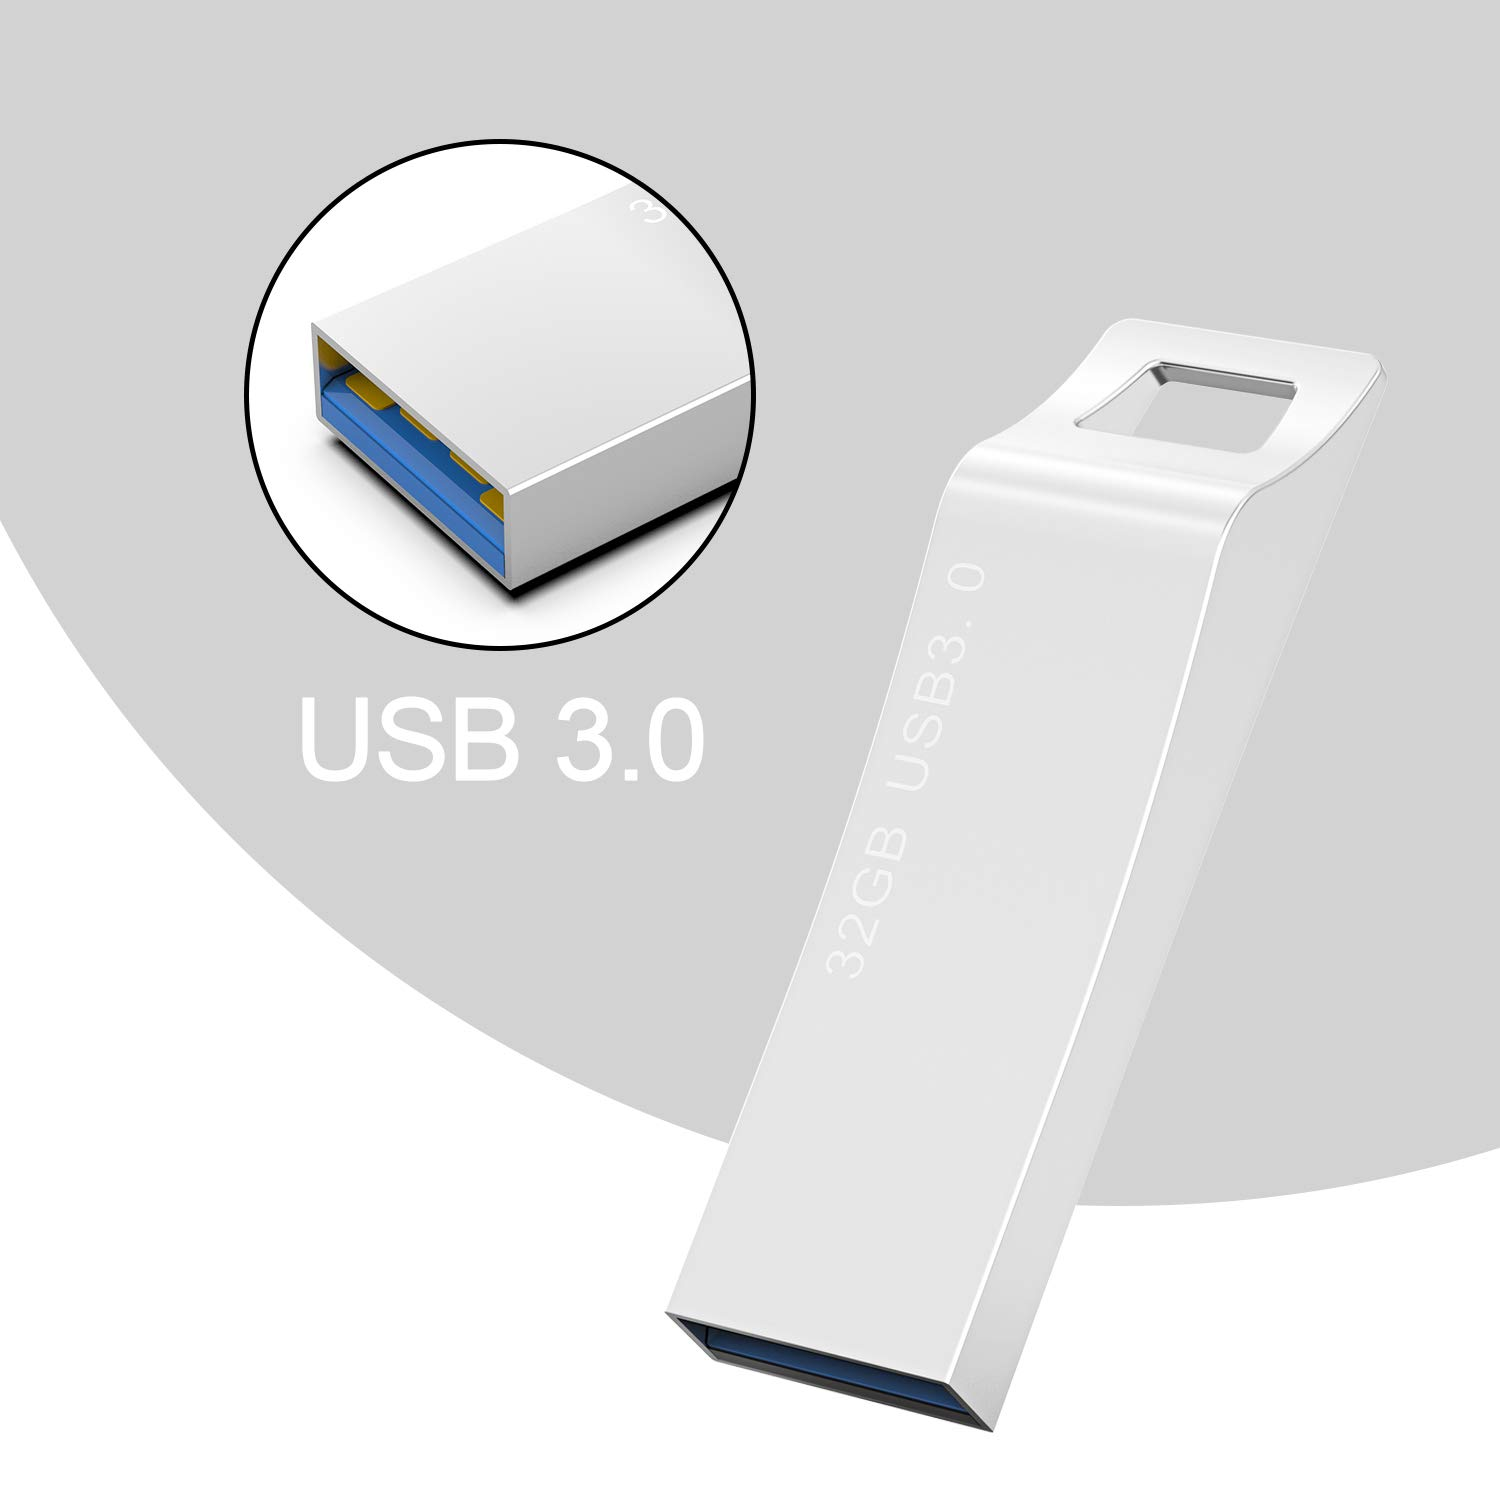 Amazon.com: Sanfeya - Memoria USB 3.0 de 32 GB para ...